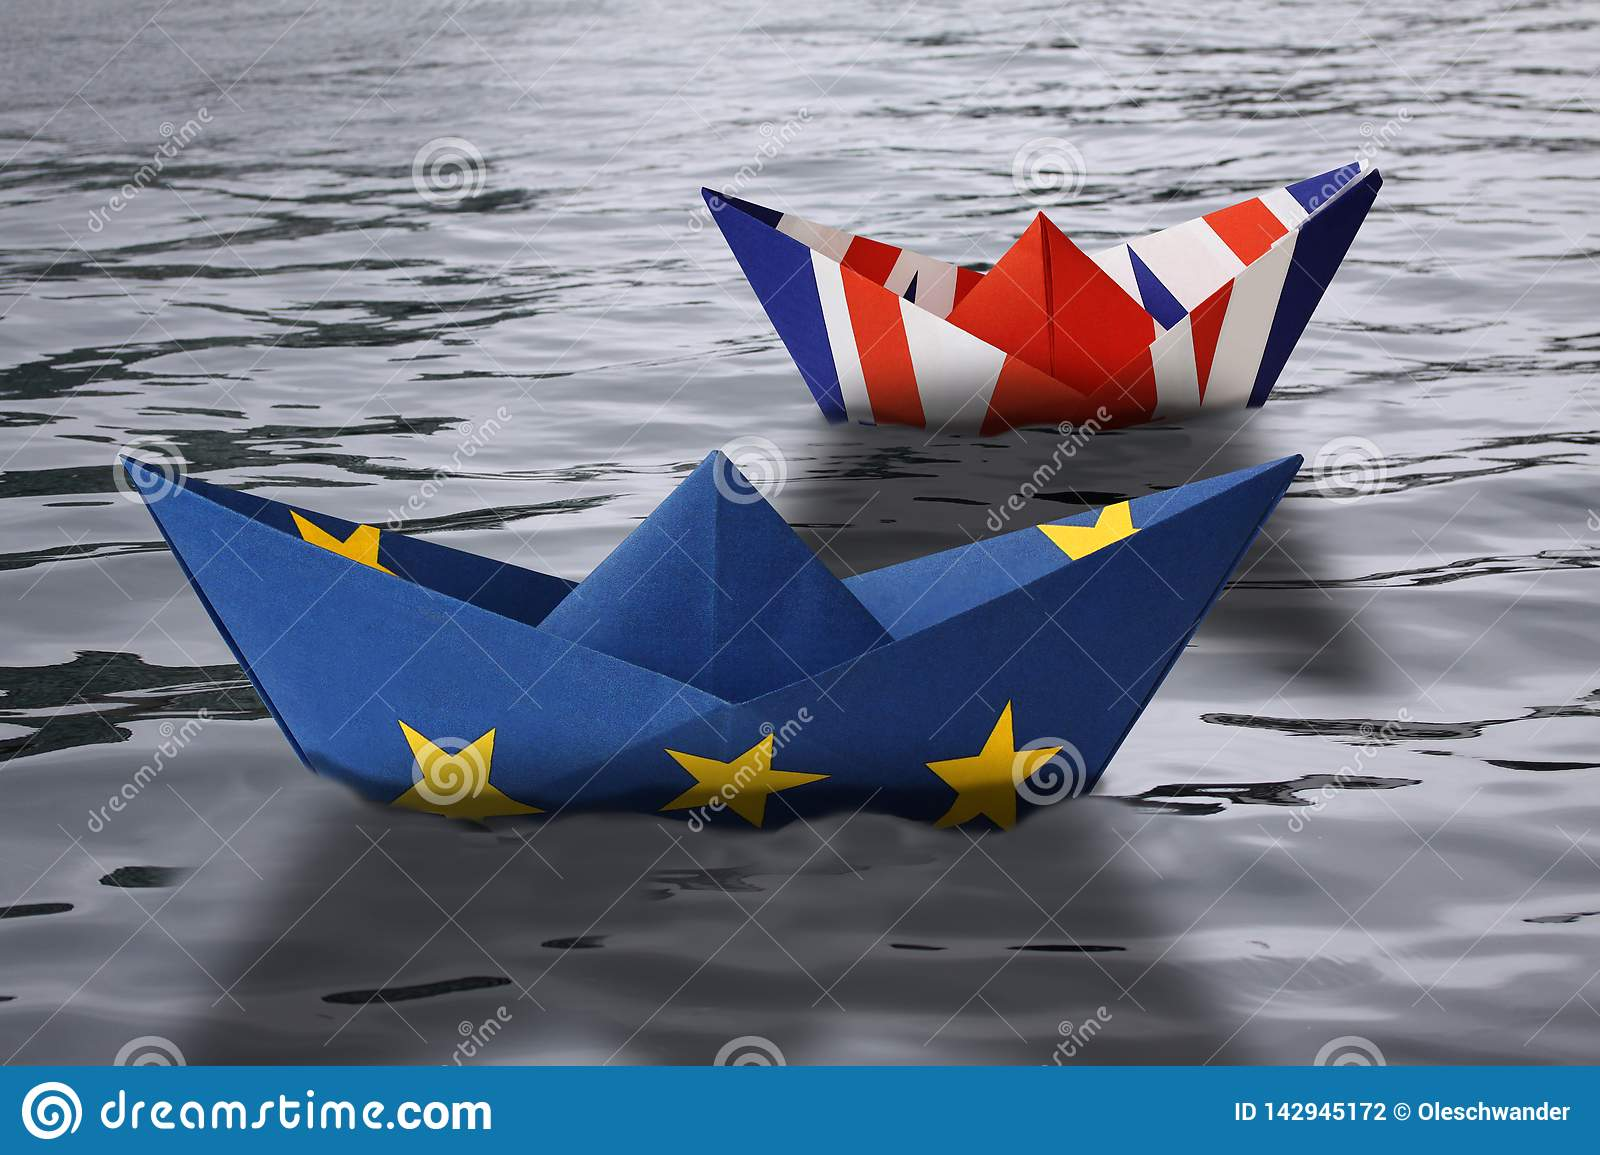 Paper ships made as European Union and British flags sailing side by side in the water - concept showing England and European Unio